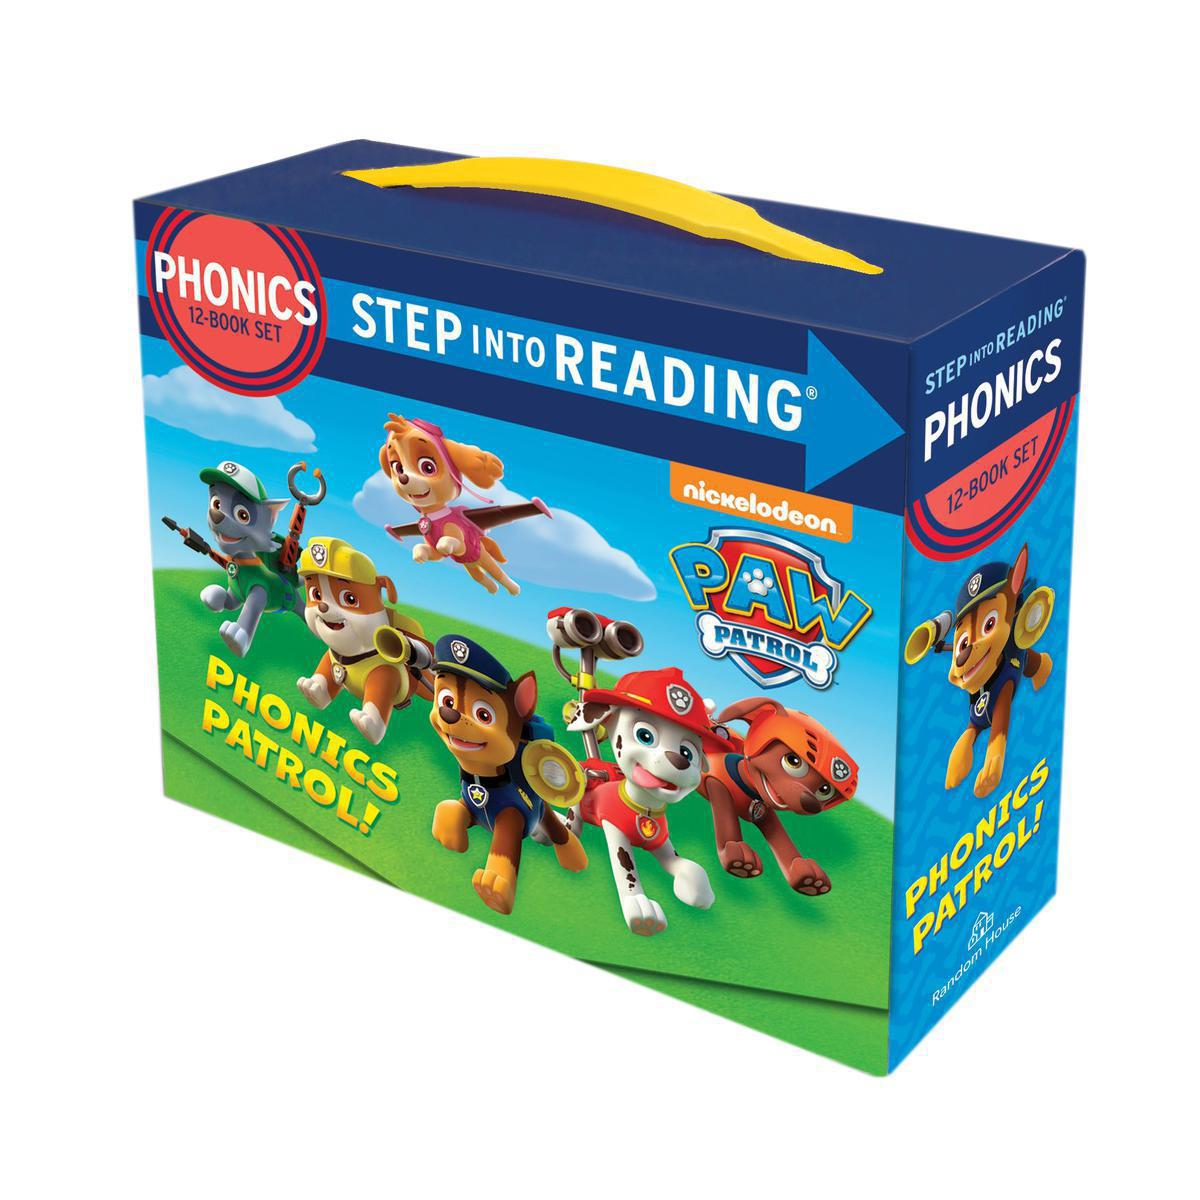 PAW Patrol: Phonics Patrol! Boxed Set